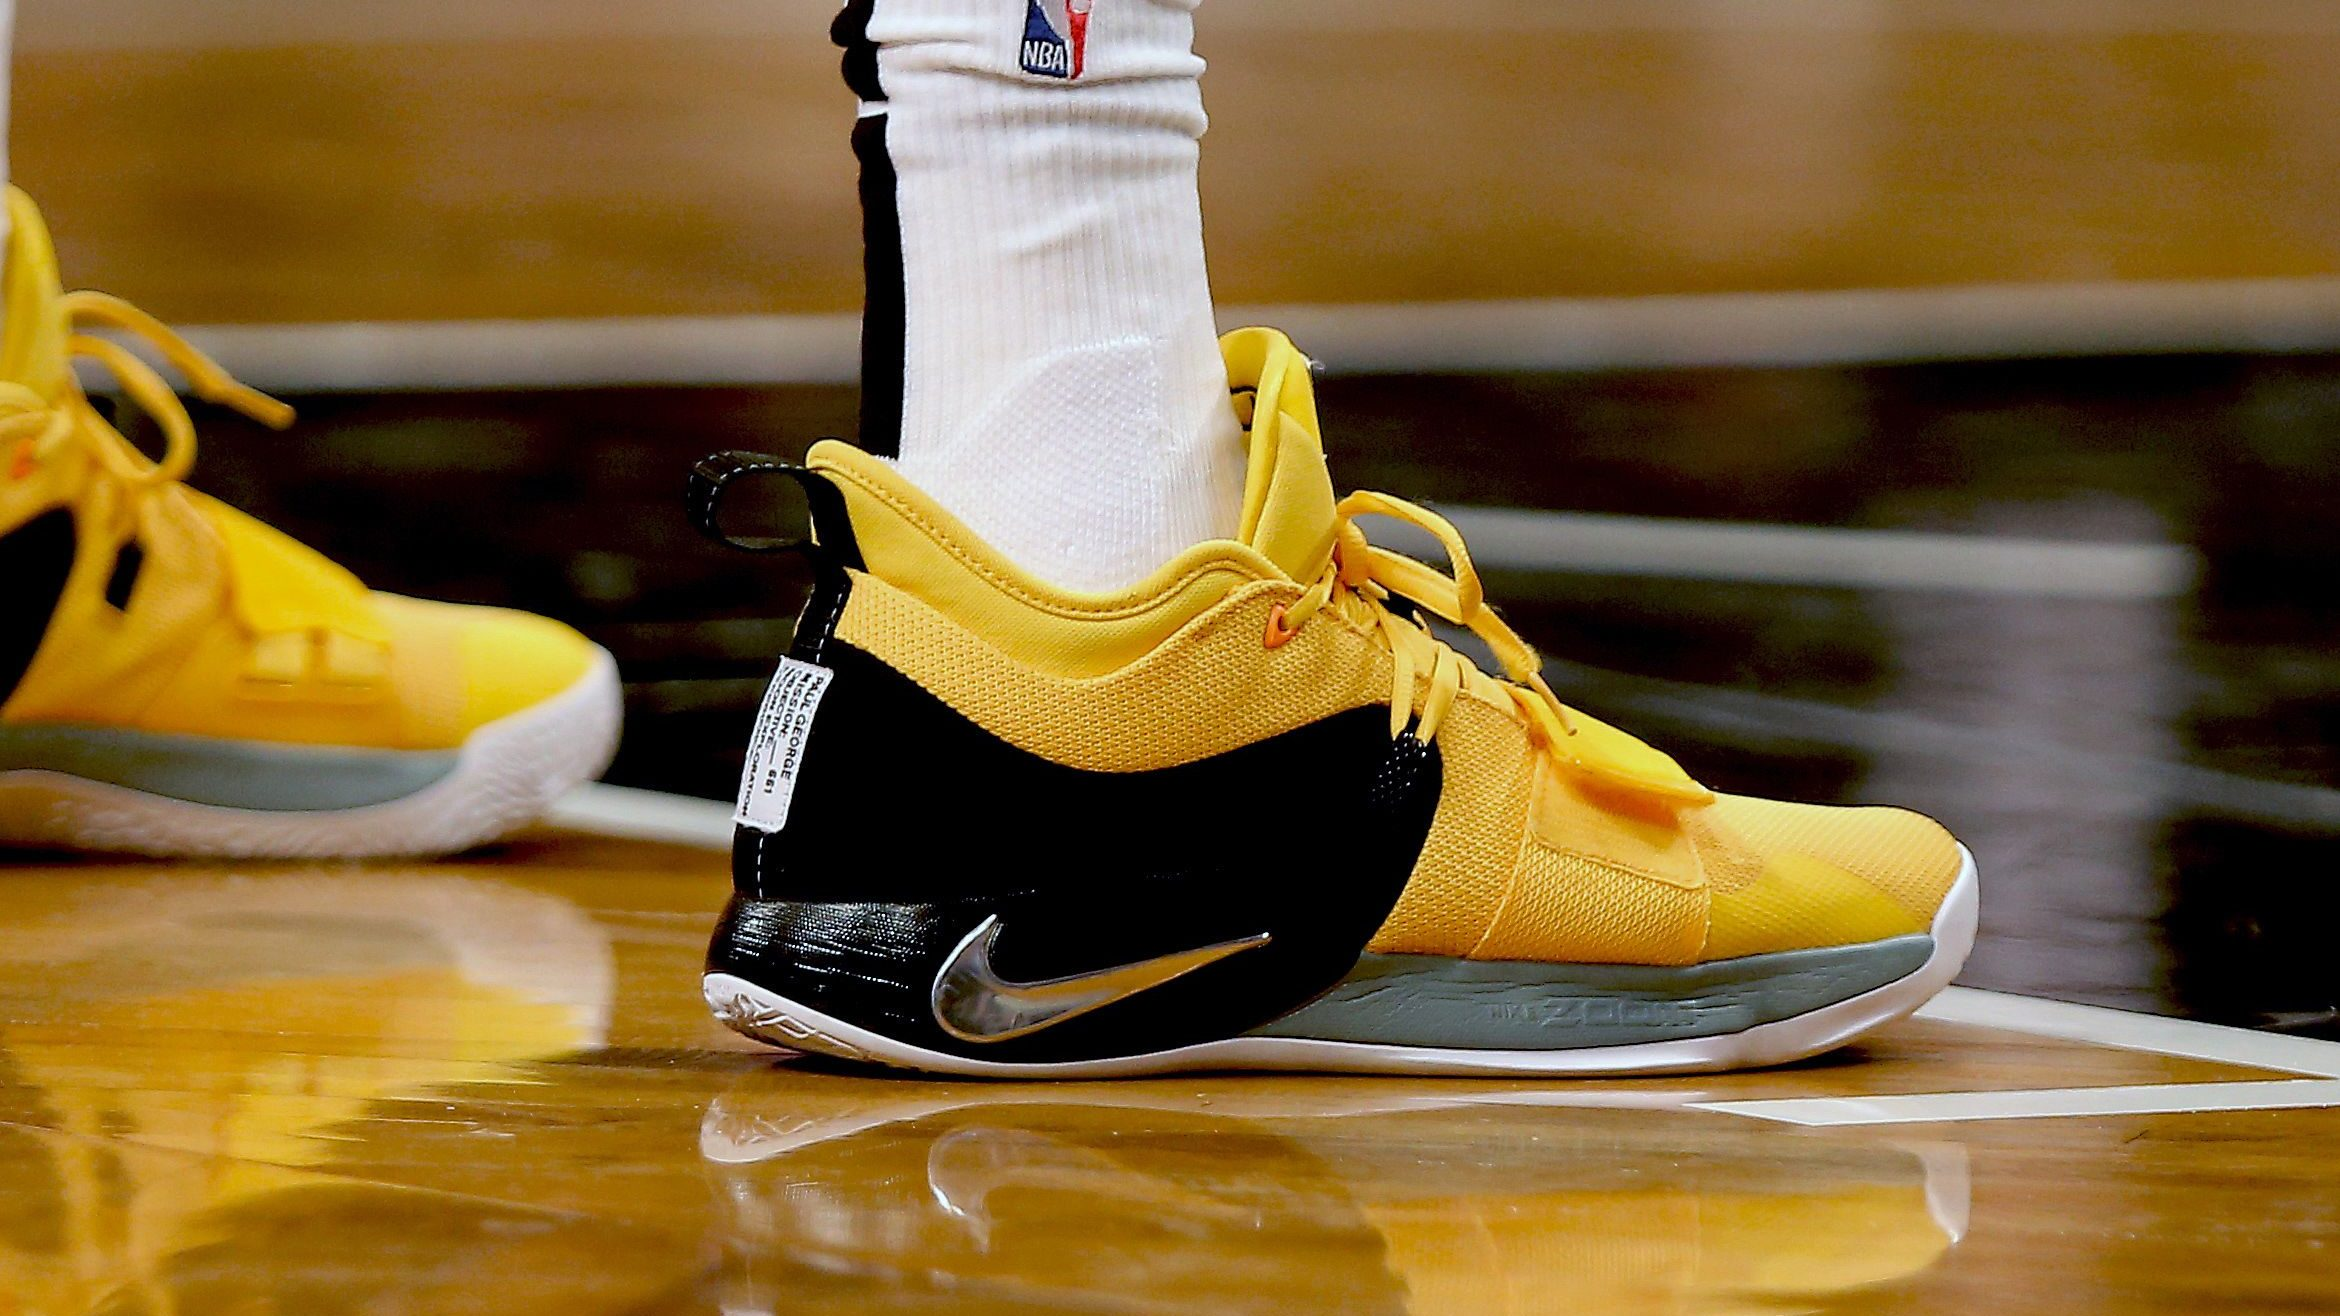 Basketball Sneakers Have Gone Out Of Fashion Quartz